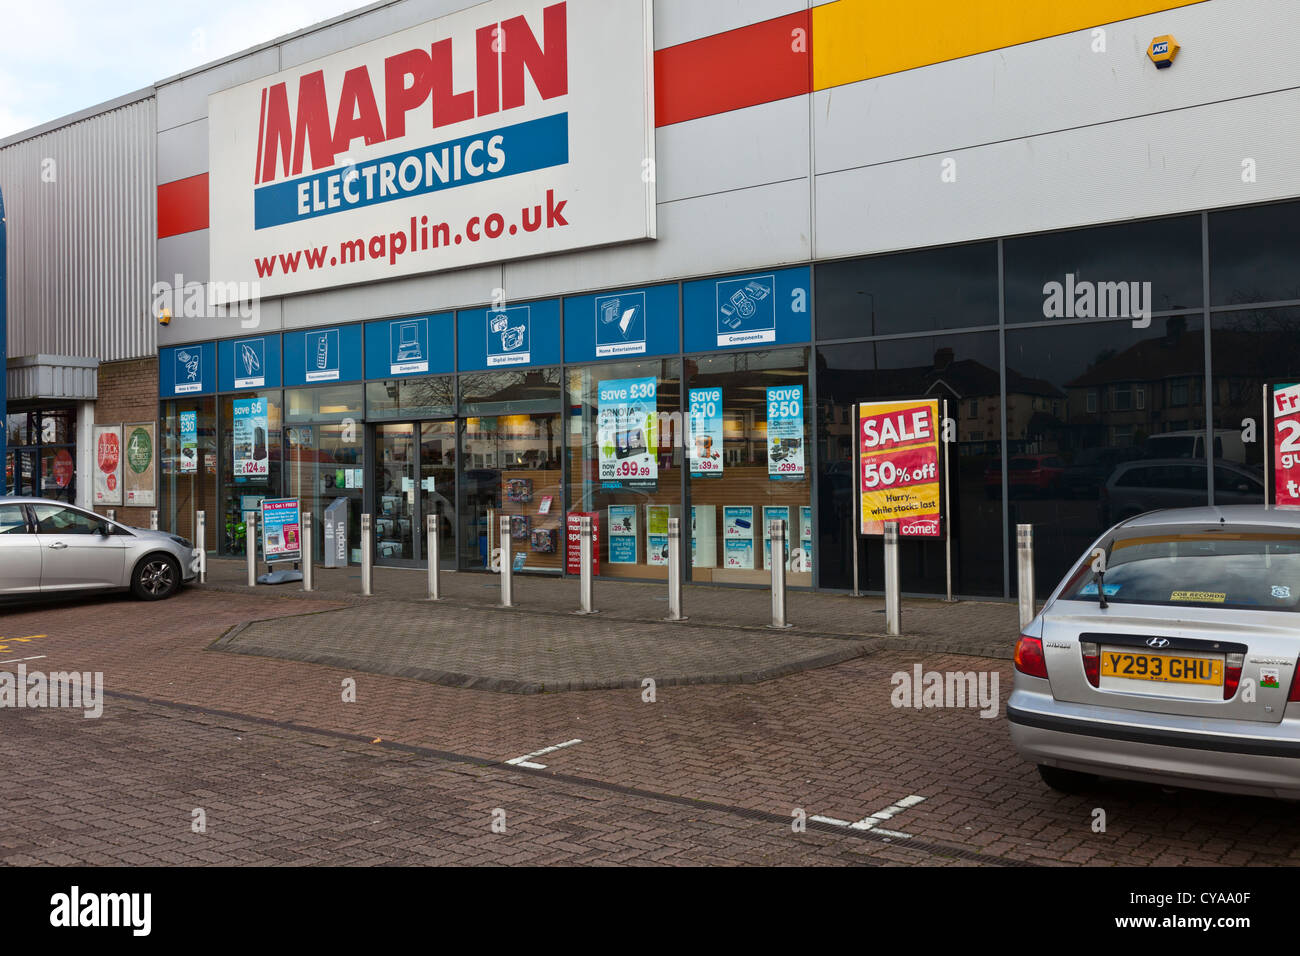 Maplin Electronics shop store, Newport Road, Cardiff, Wales